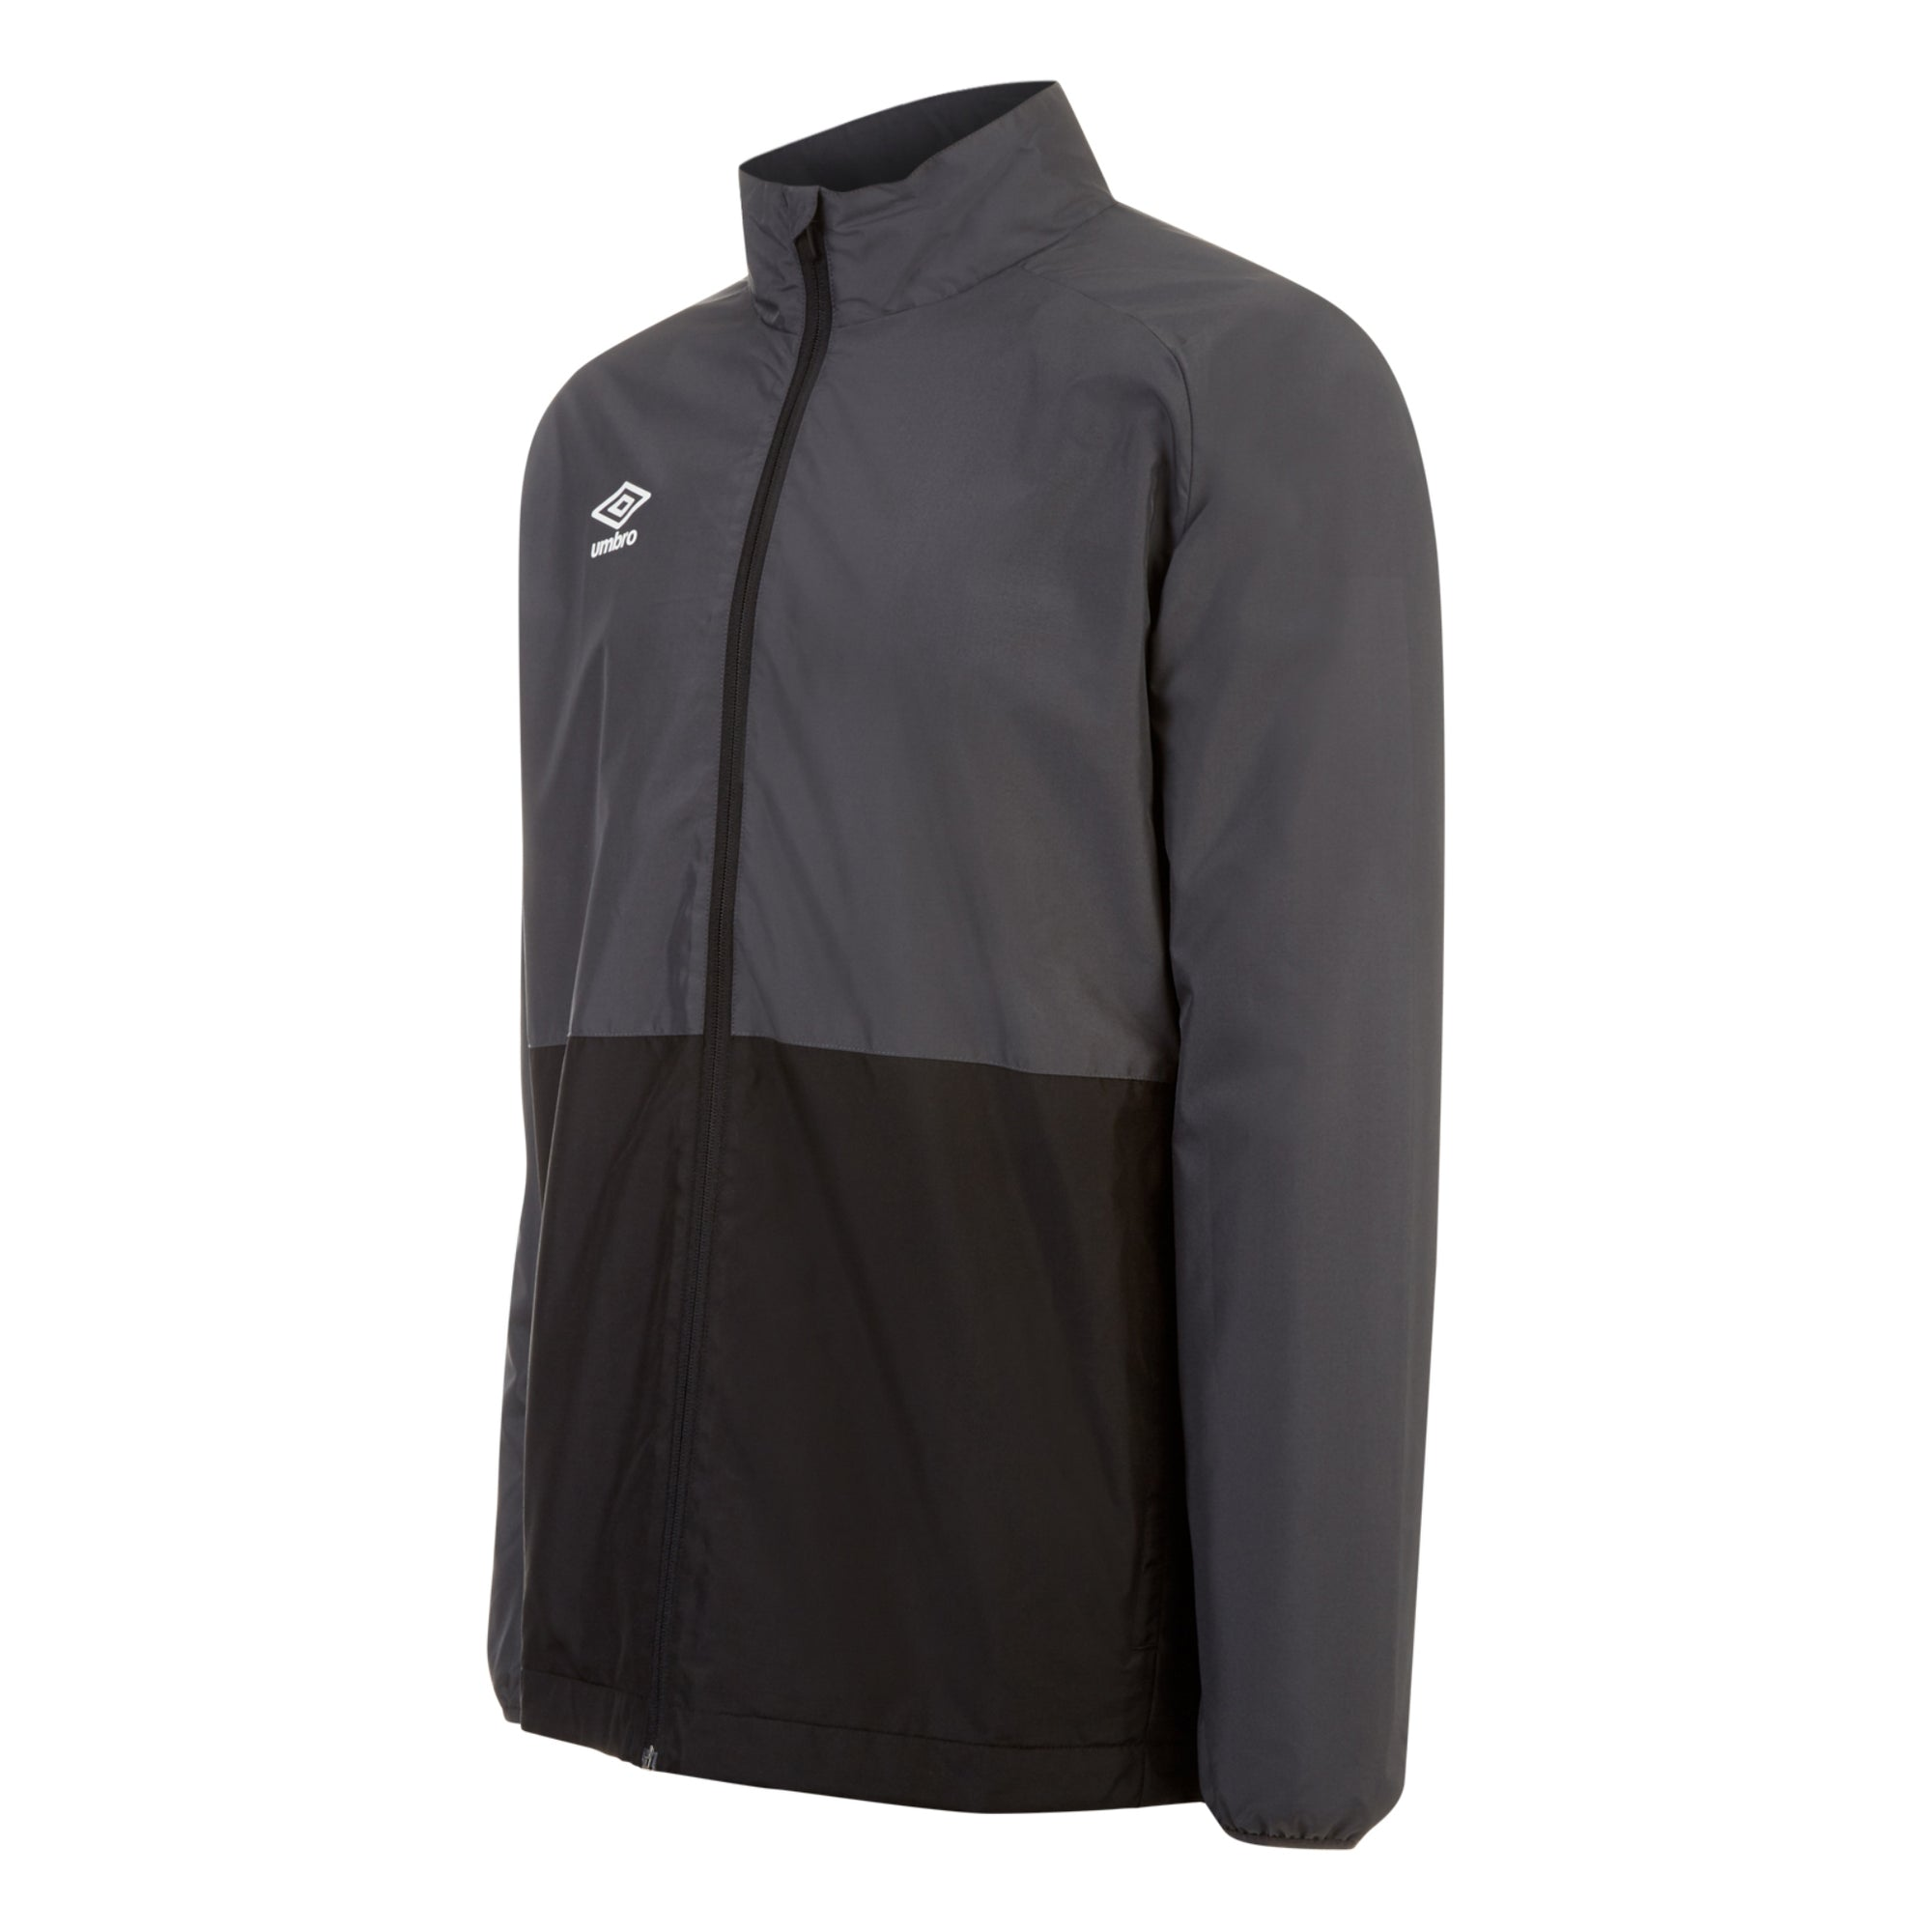 Umbro Training Shower Jacket - Carbon/Black